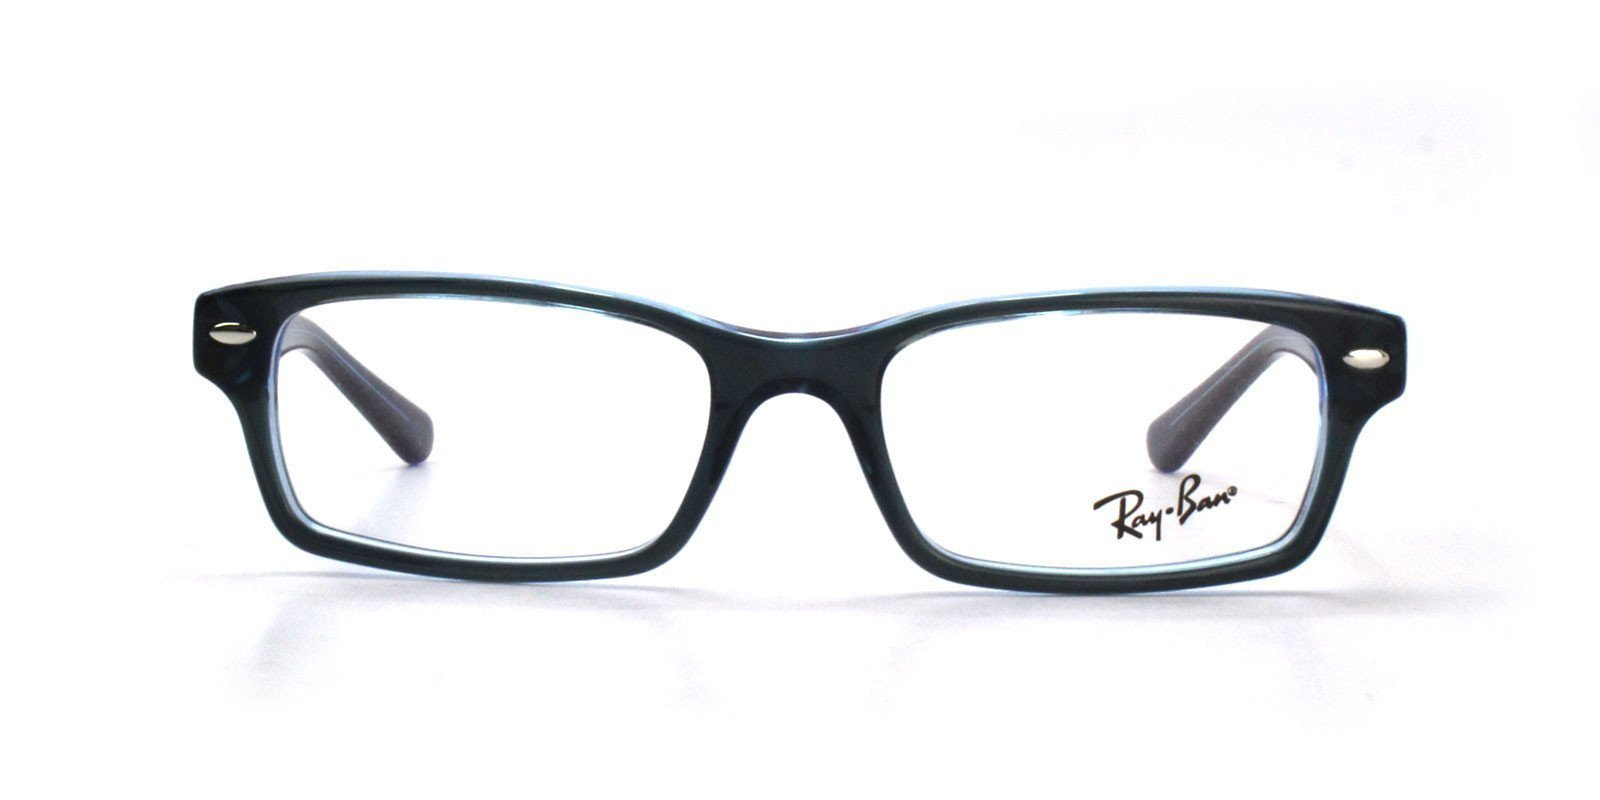 Ray Ban Rx - RB1530 Blue Rectangular Unisex Eyeglasses - 48mm-Eyeglasses-Designer Eyes